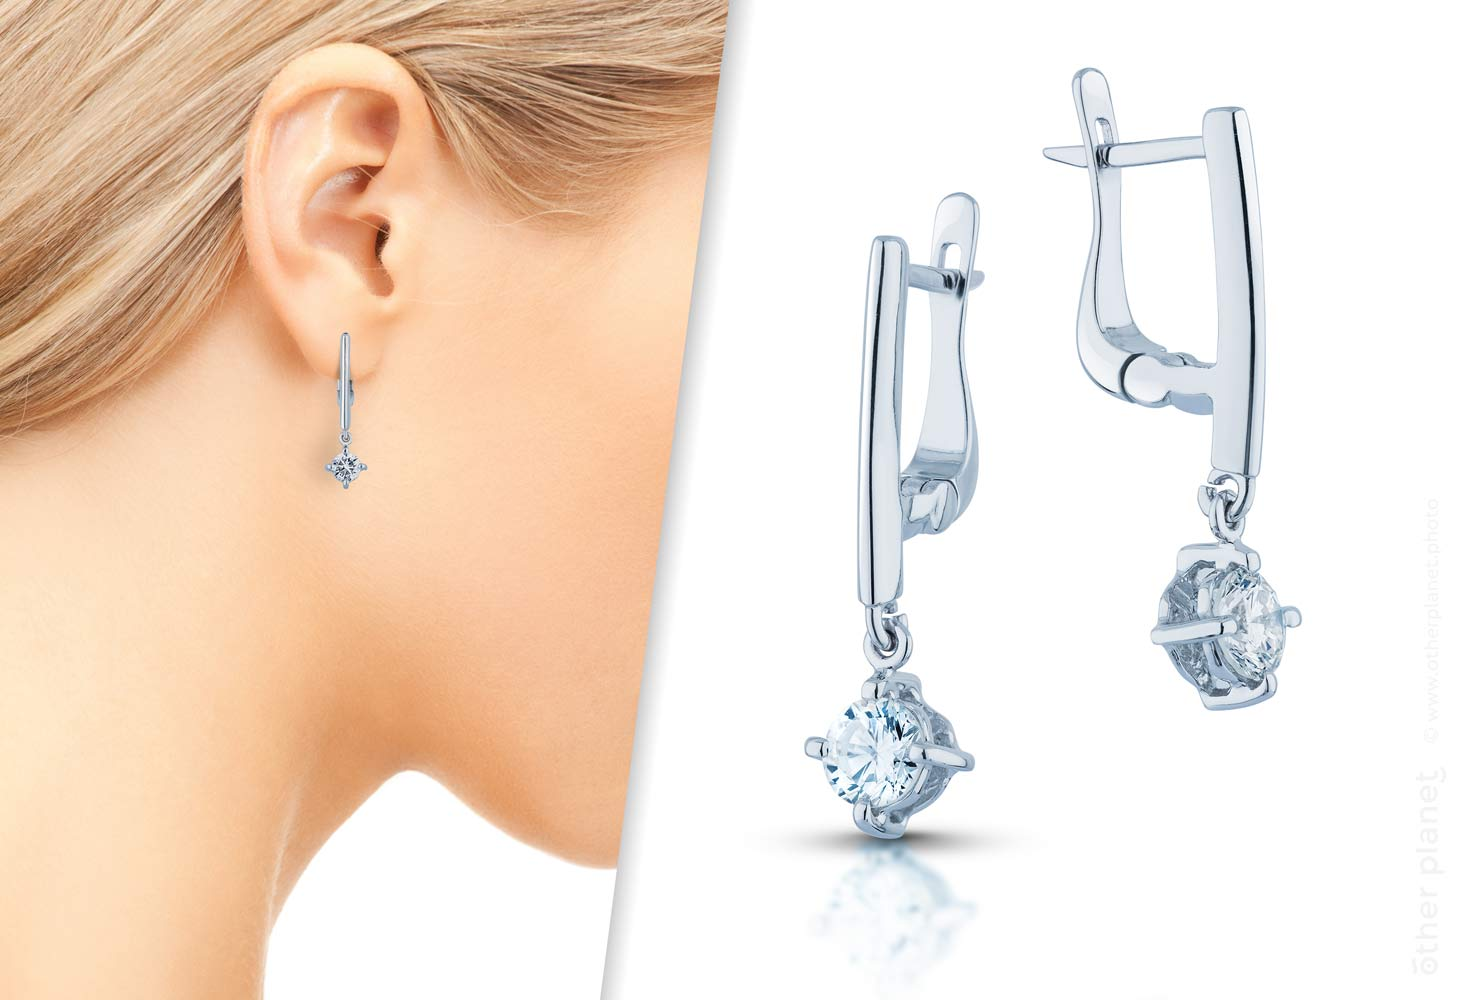 Diamond earrings by HSZ